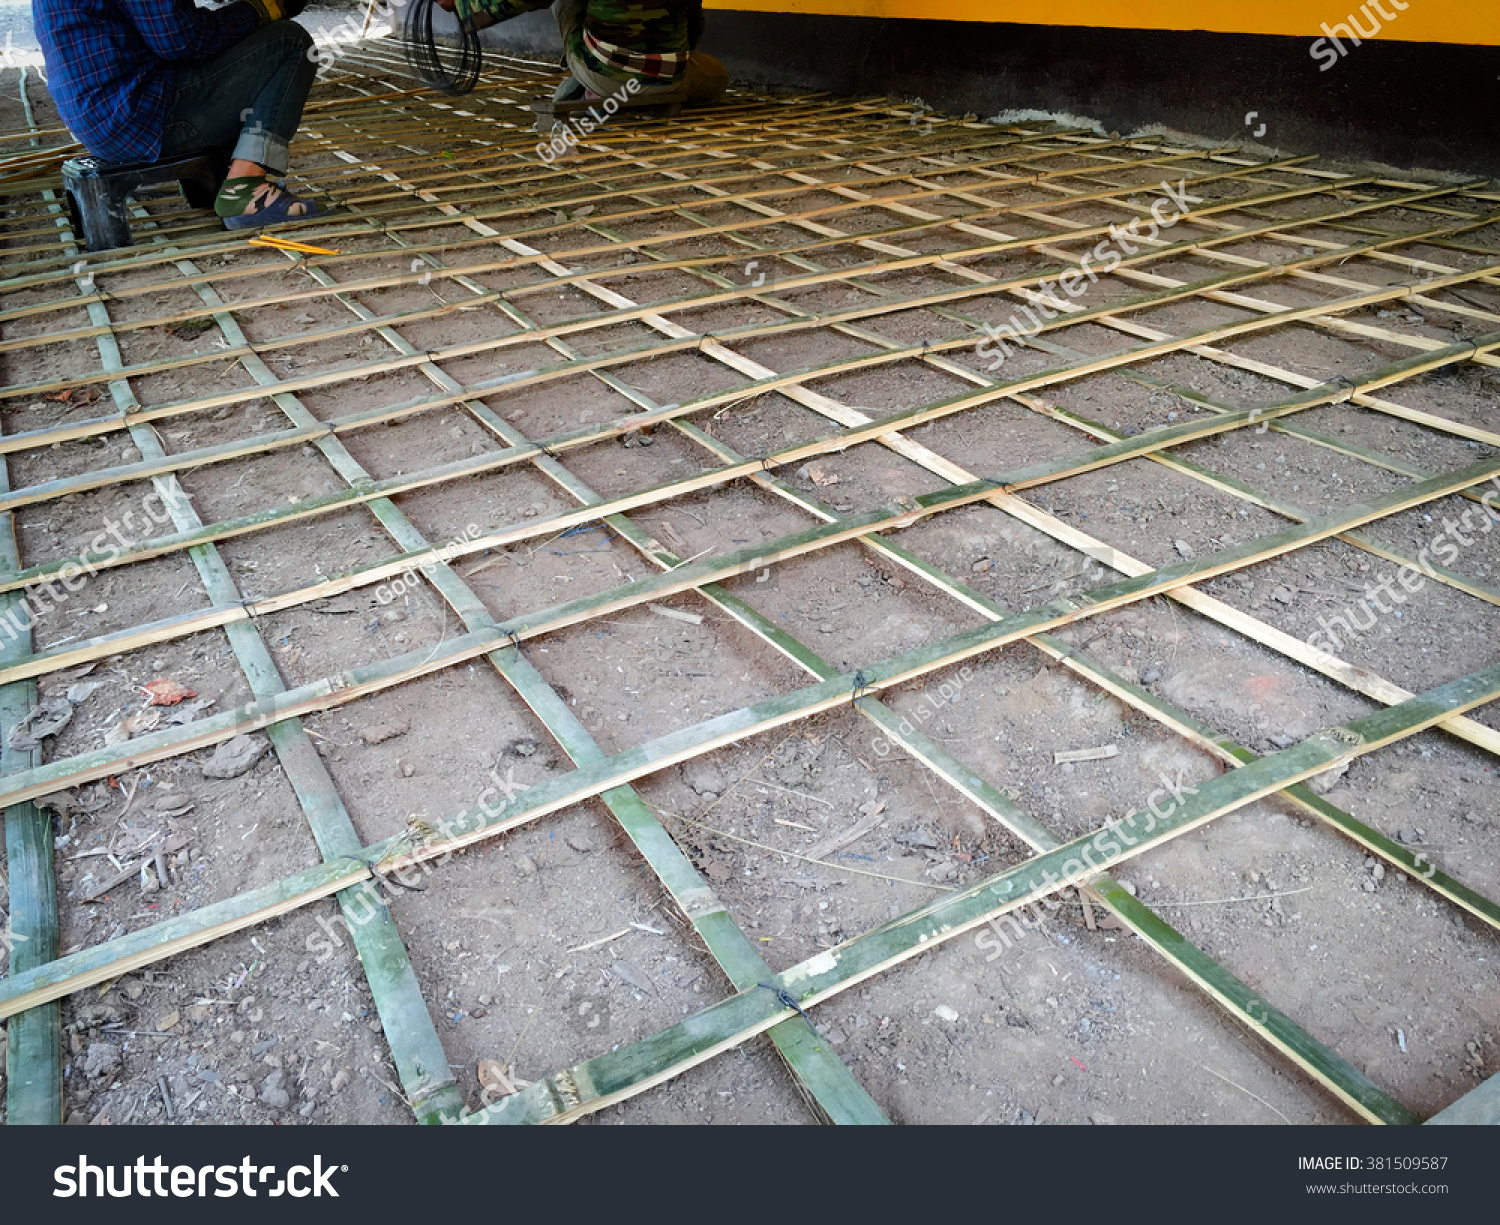 Reinforced Bamboo Cage Concrete Construction Site Buildings Landmarks Stock Image 381509587